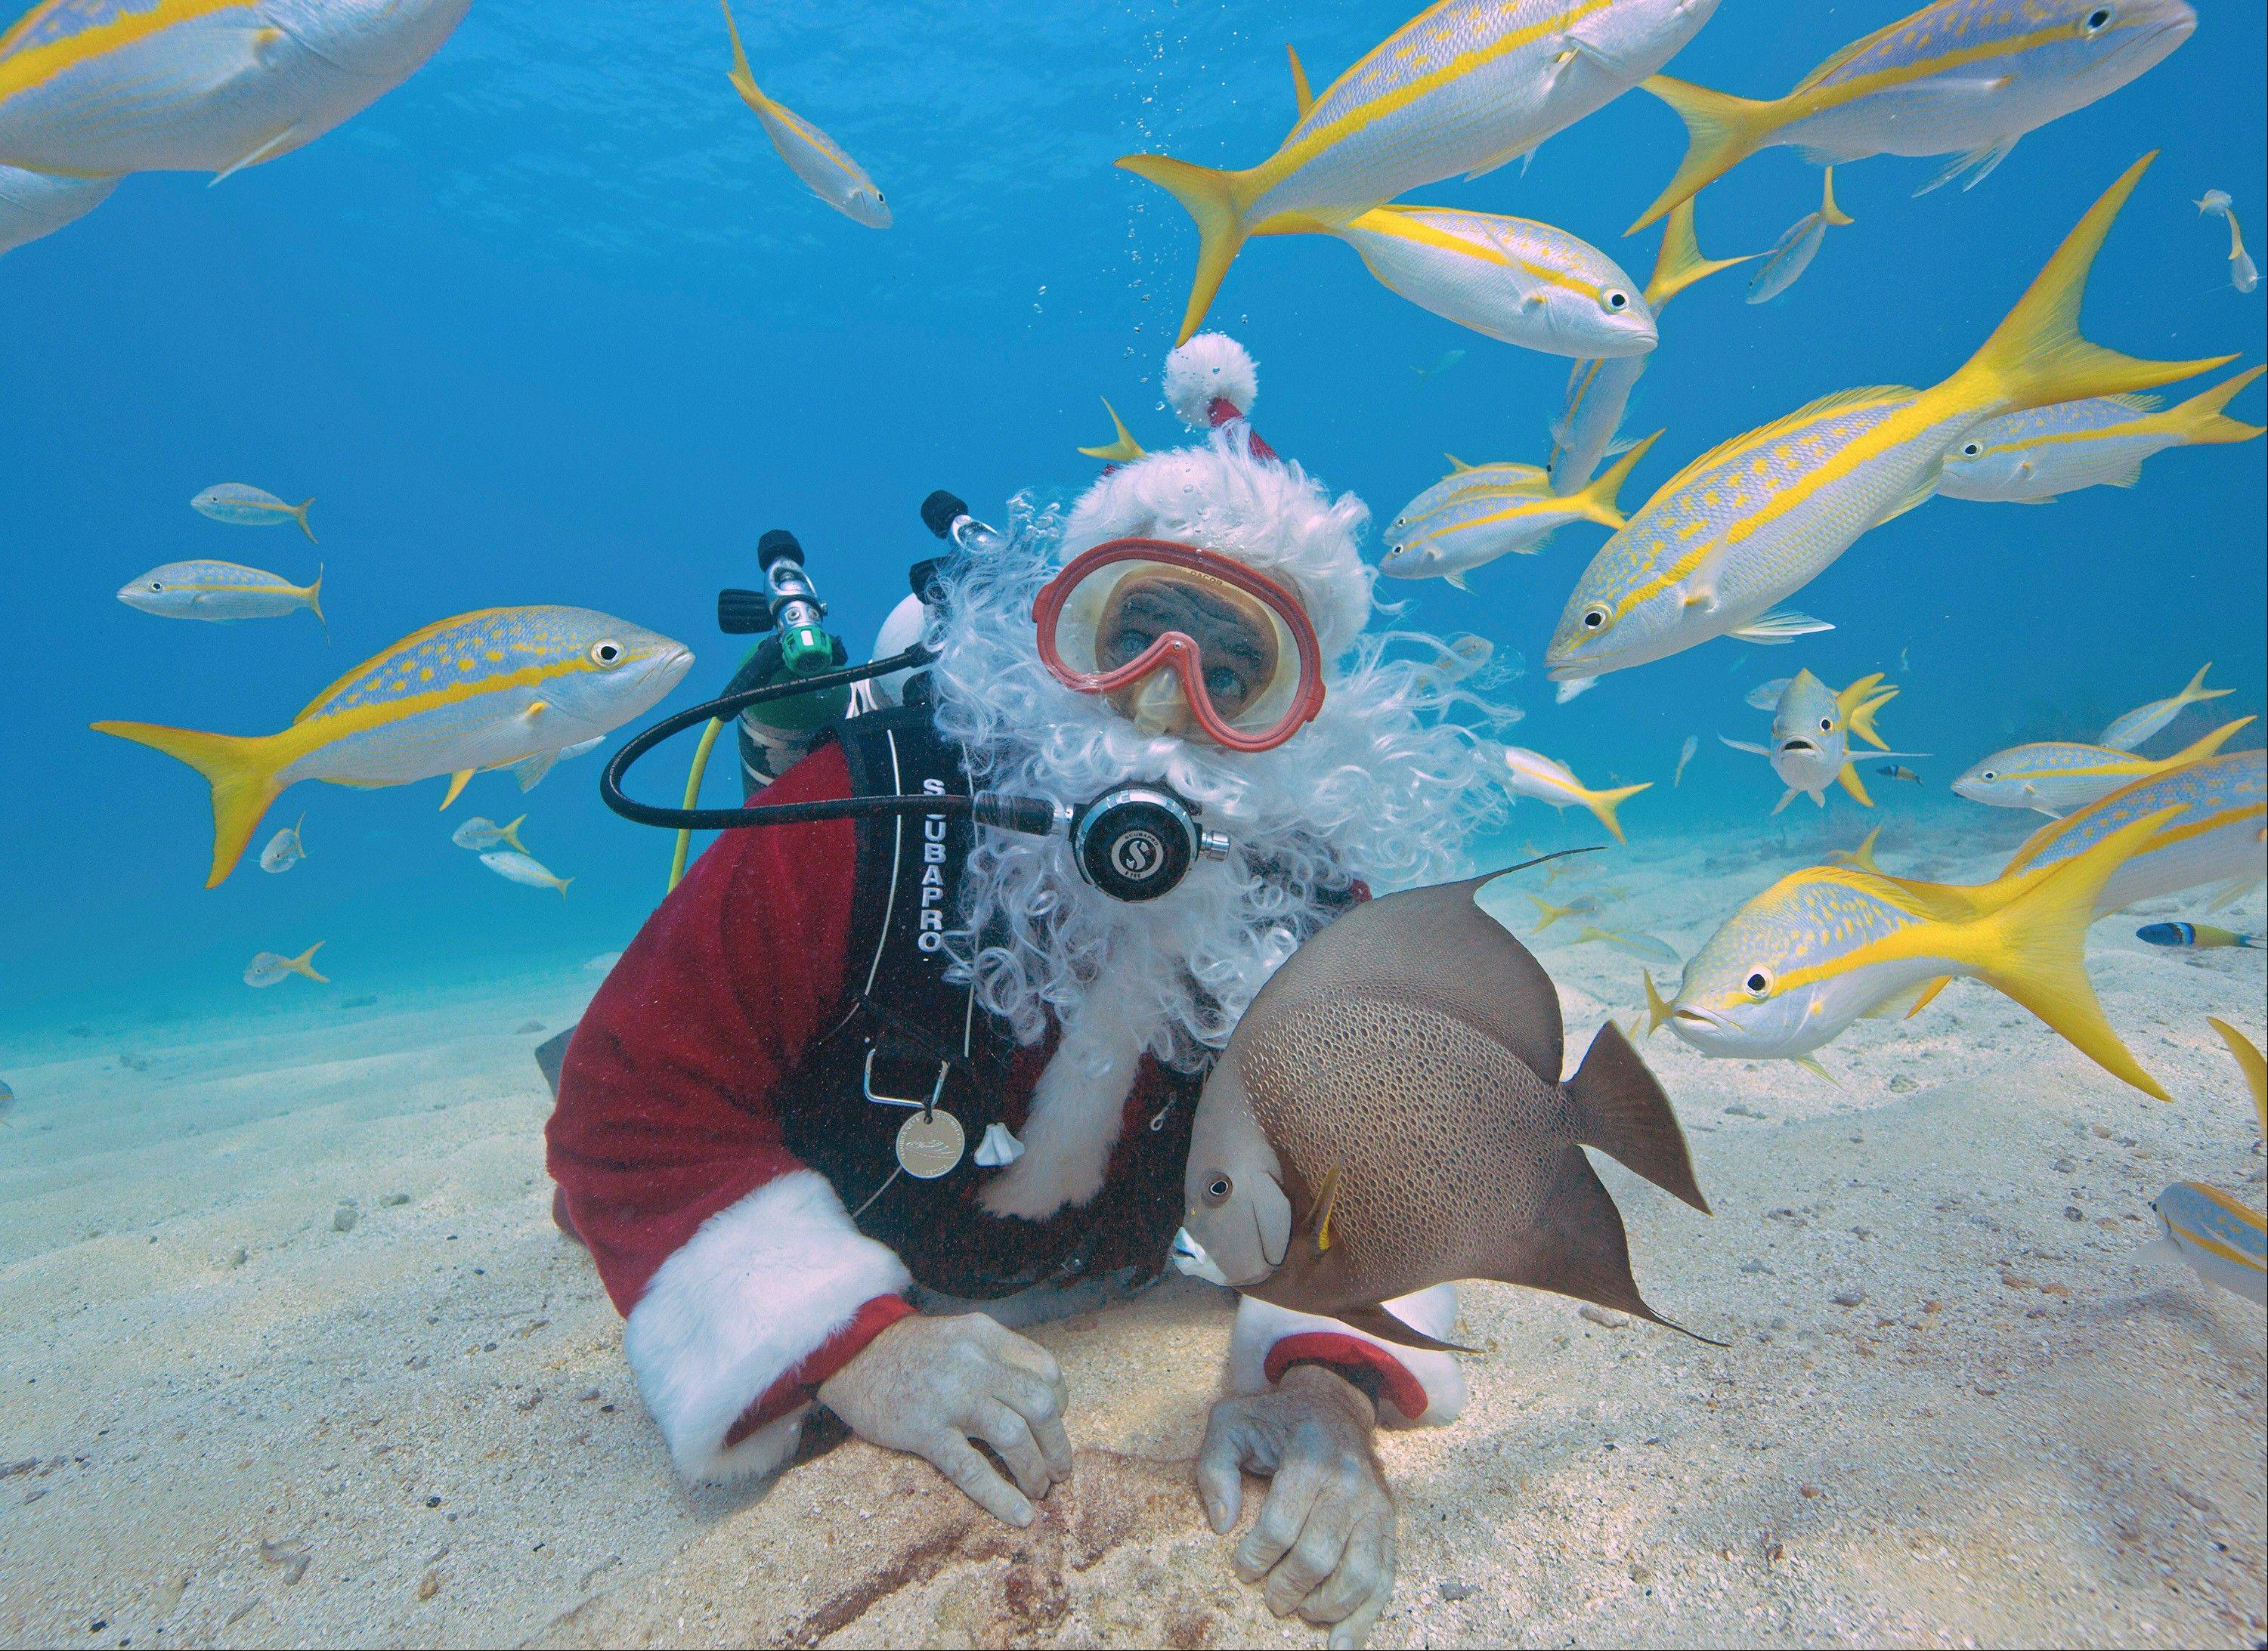 Spencer Slate, garbed as Santa Claus, dives with yellowtail snapper and an angelfish Tuesday in the Florida Keys National Marine Sanctuary off Key Largo, Fla.